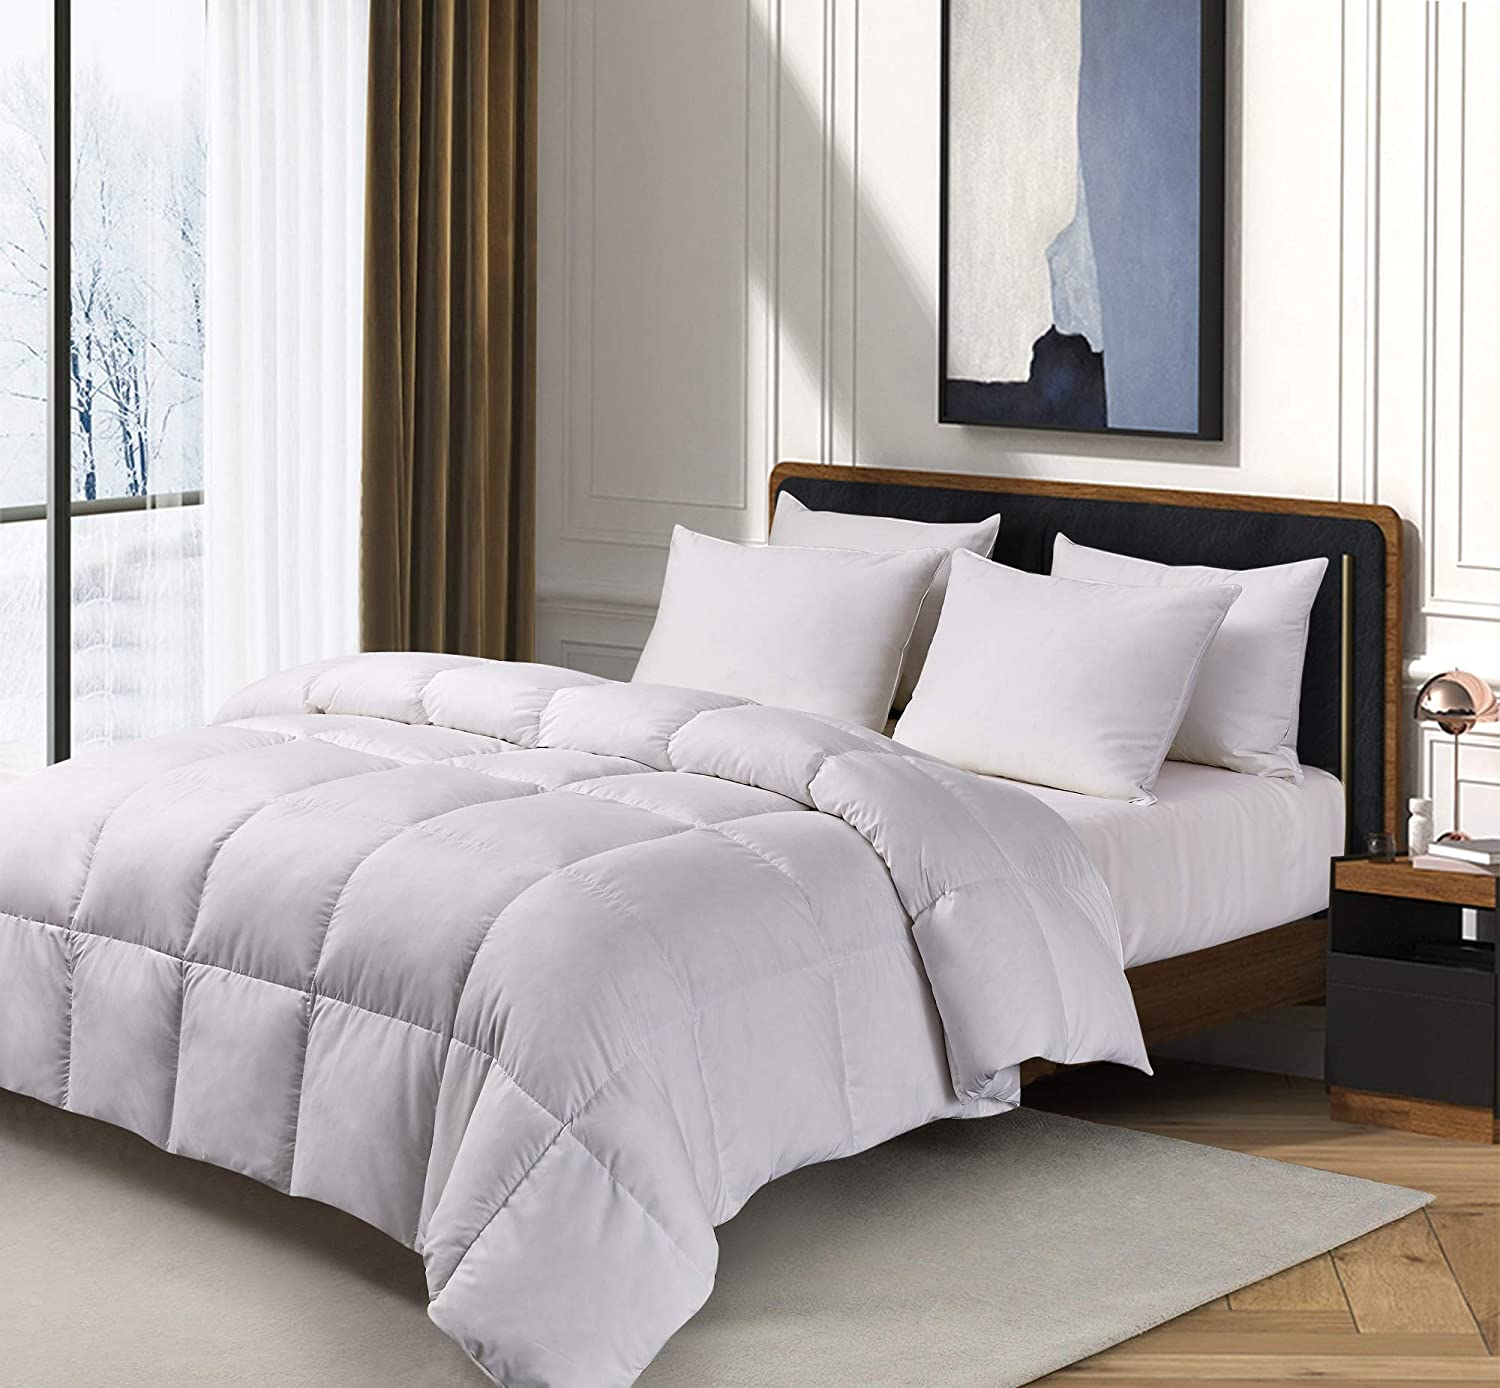 Kathy Ireland White Essential Microfiber Cover Feather Comforter-Hypoallergenic Fill-All Season Warmth, Twin